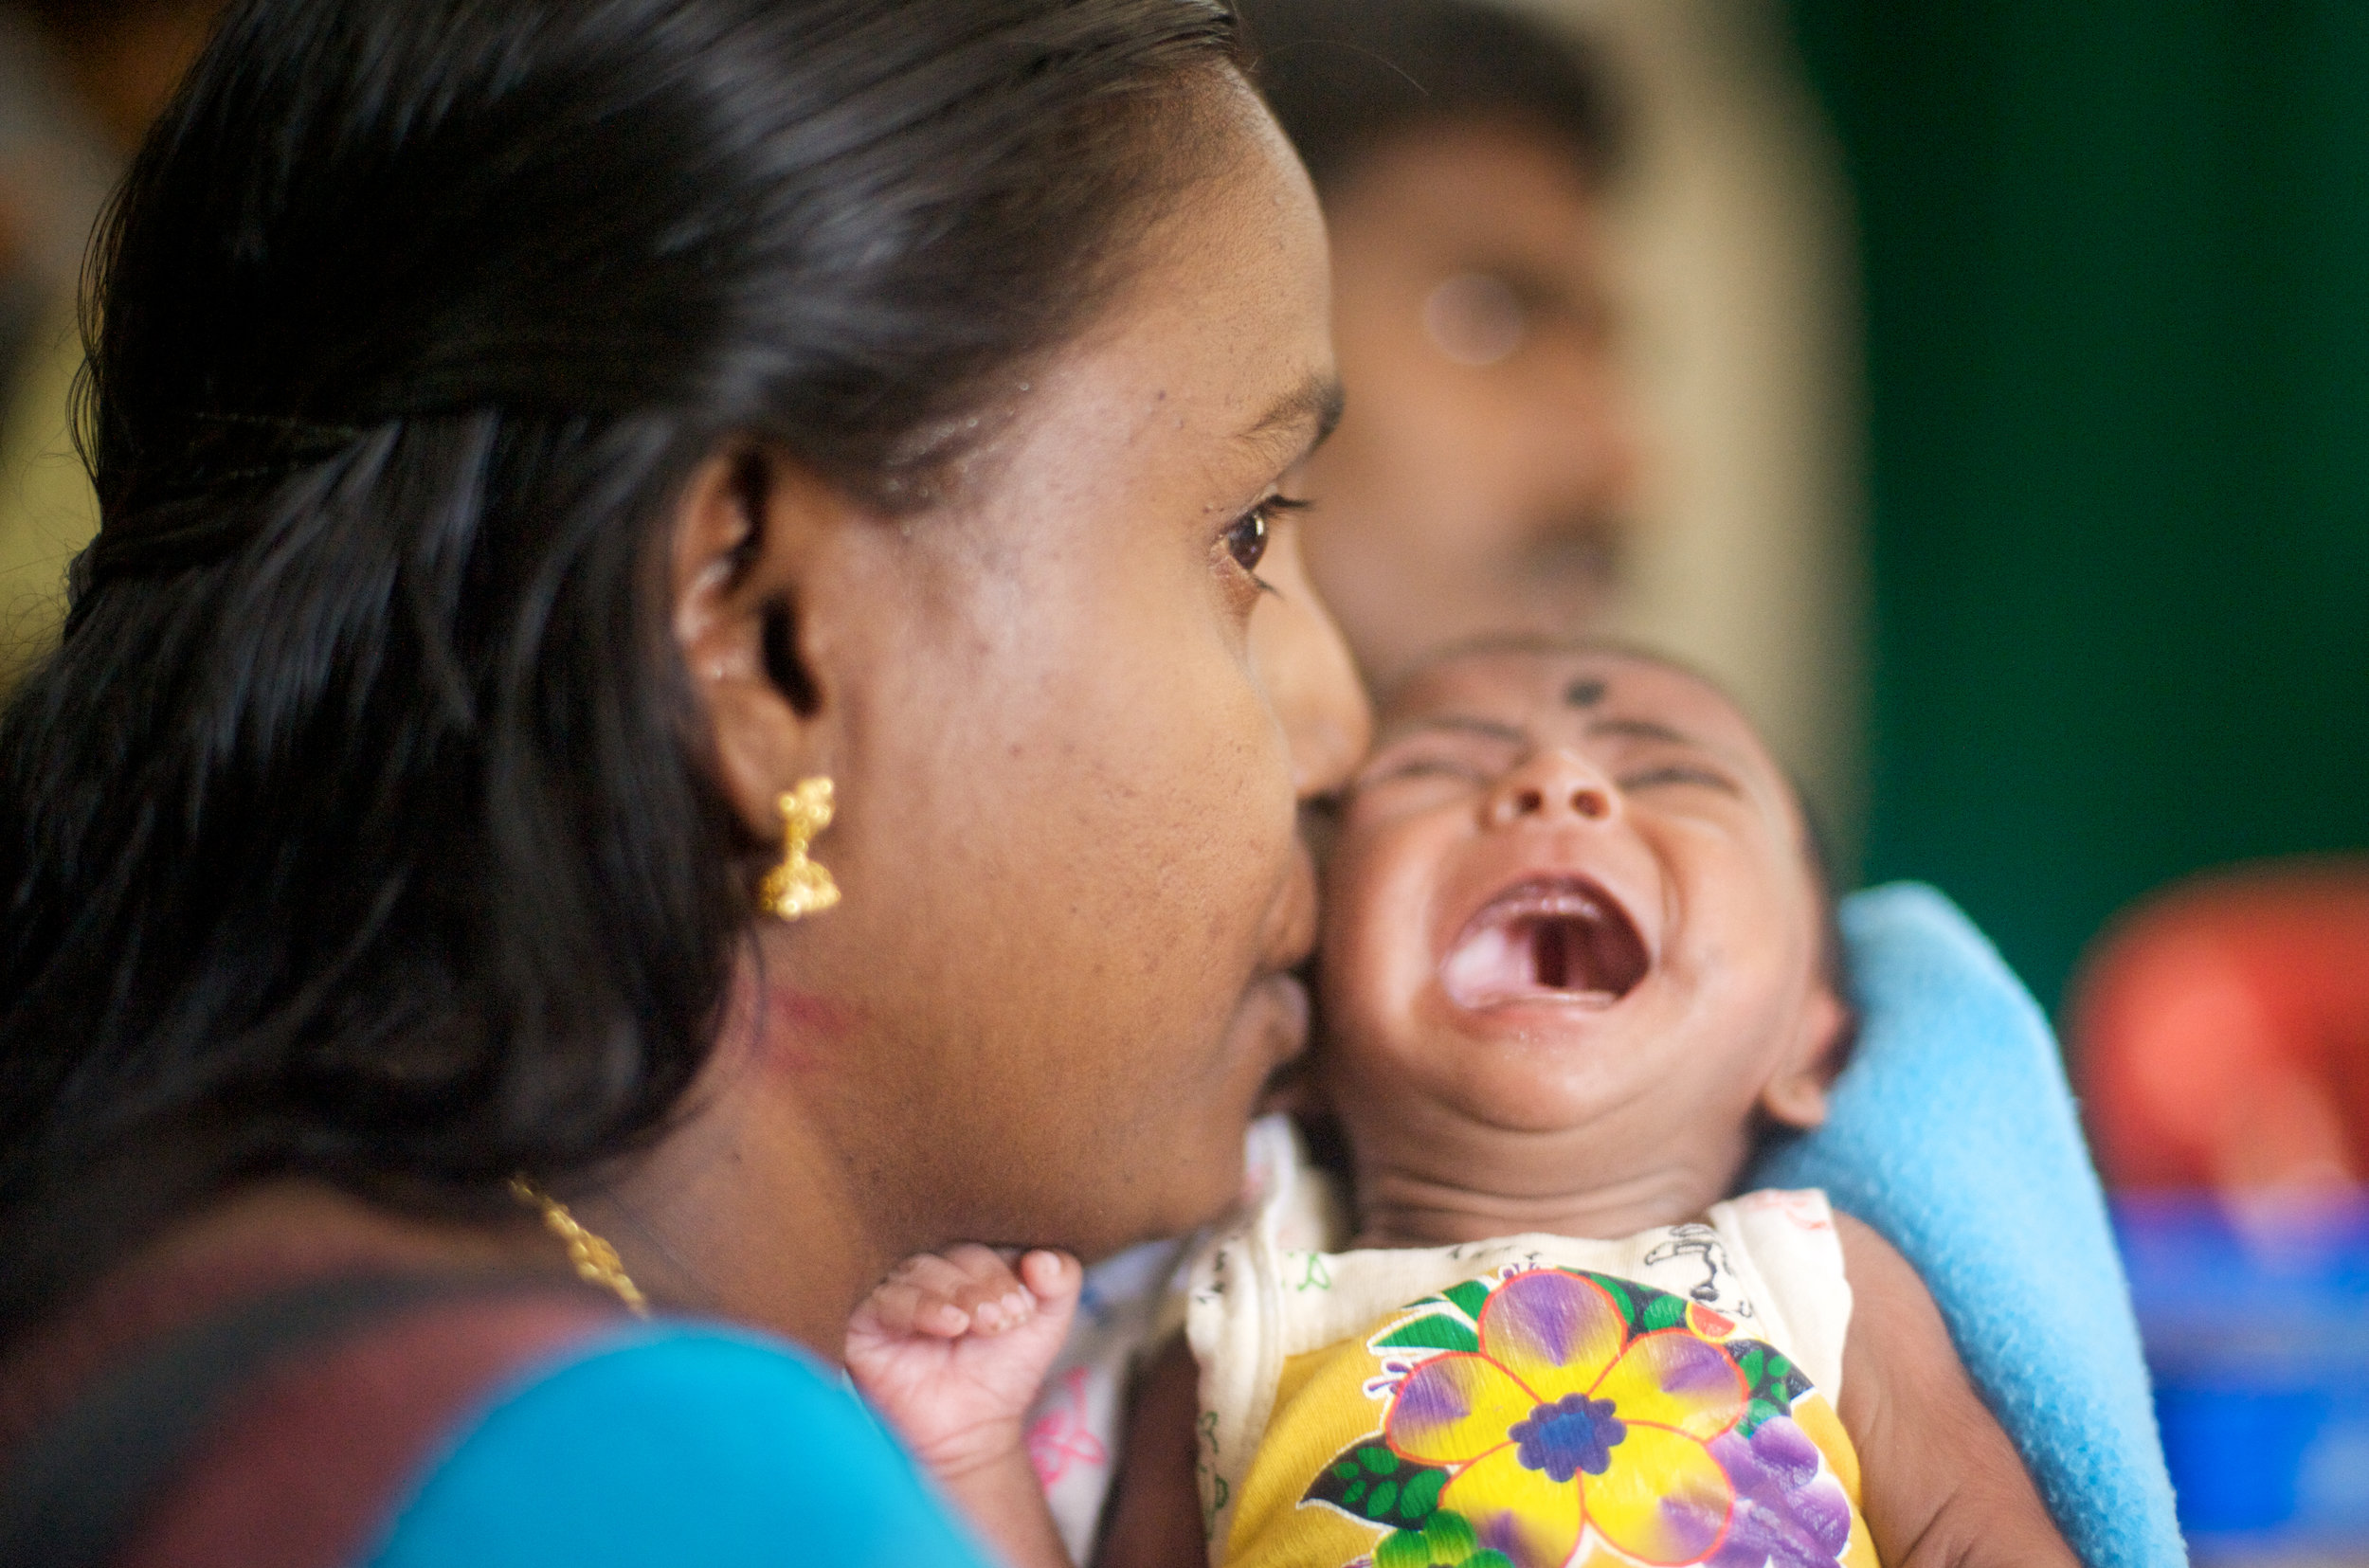 The consultation. A cleft palate, visible in the open mouth of a crying infant, brings a family to Dr. Adenwalla's clinic where he performs free corrective surgeries.